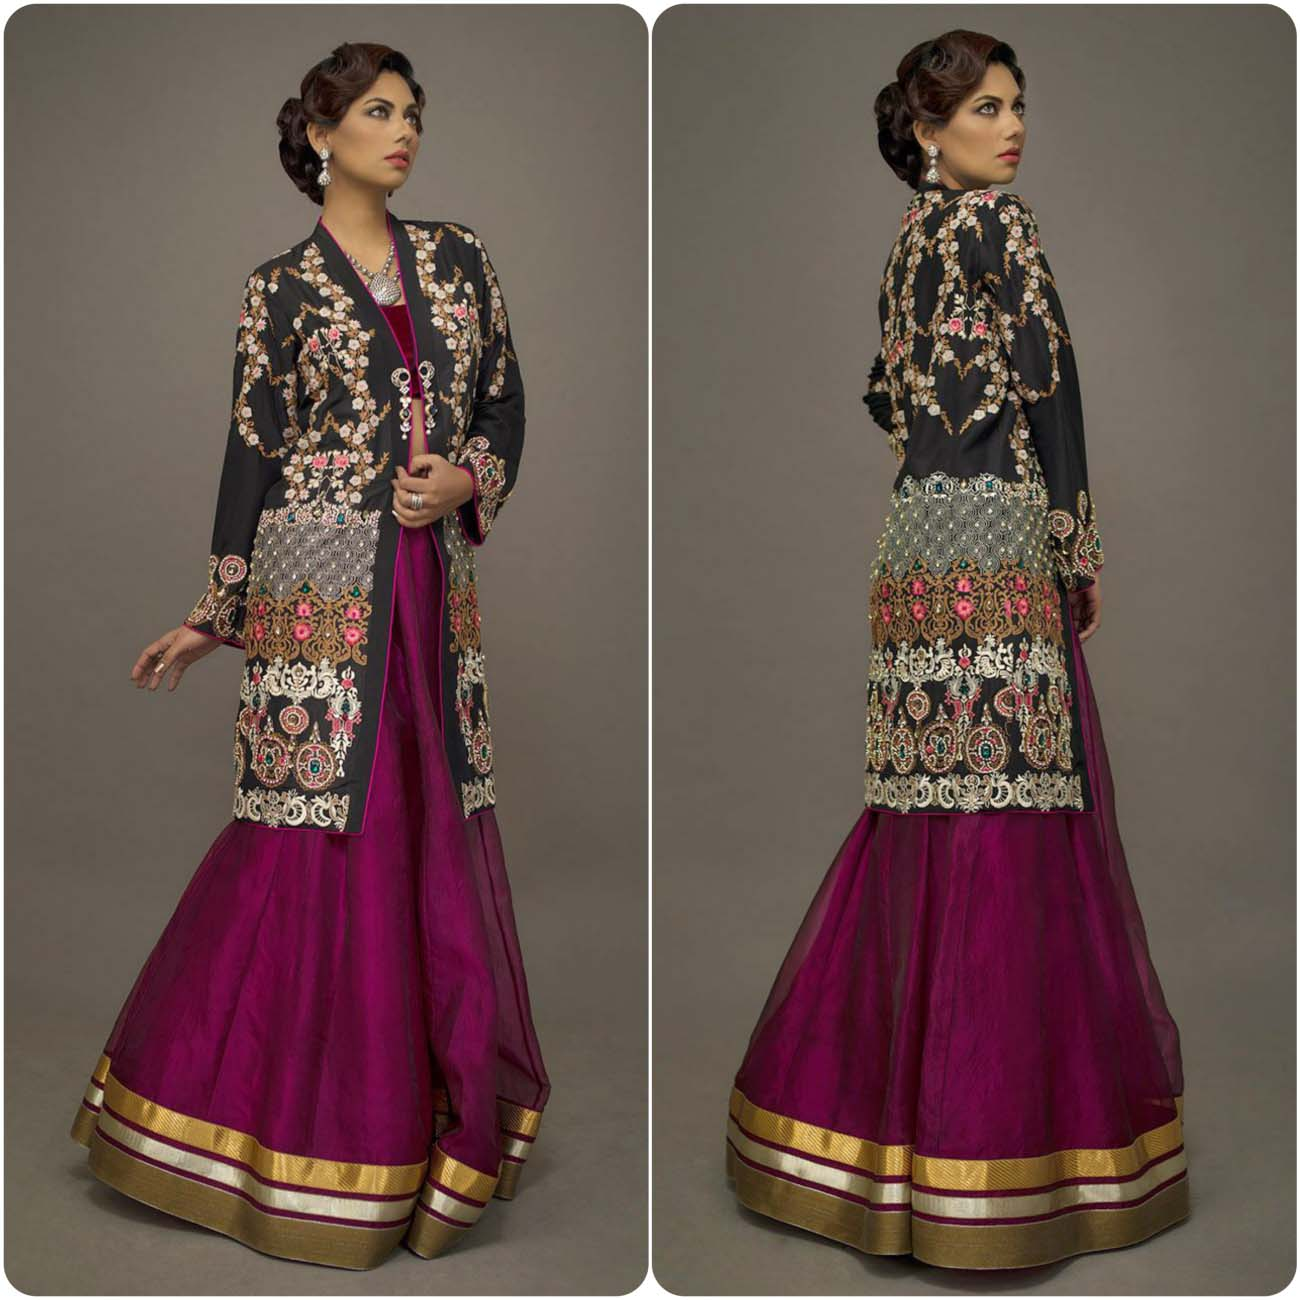 Deepak perwani Wedding Dresses Collection Fo Women 2016-2017...styloplanet (19)